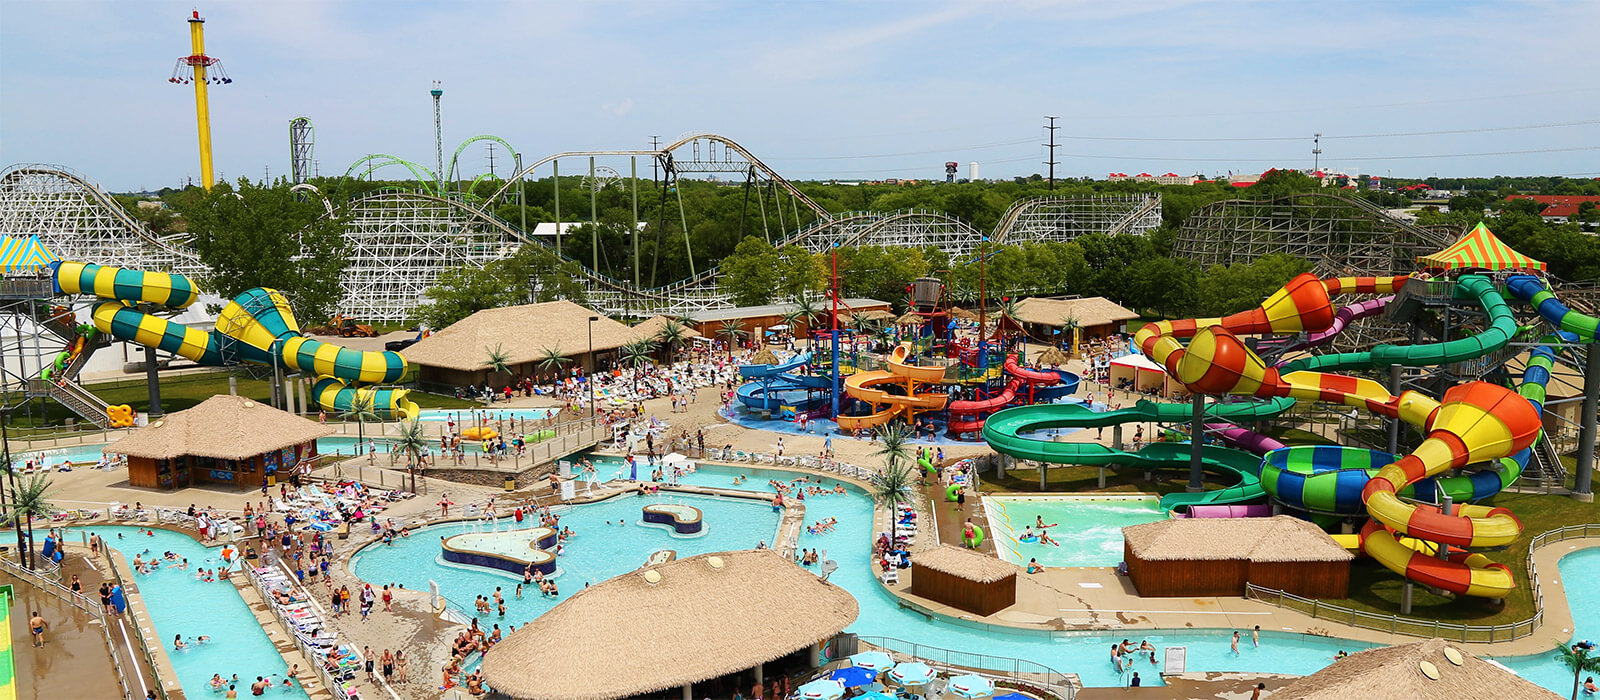 Adventureland - Des Moines, Iowa